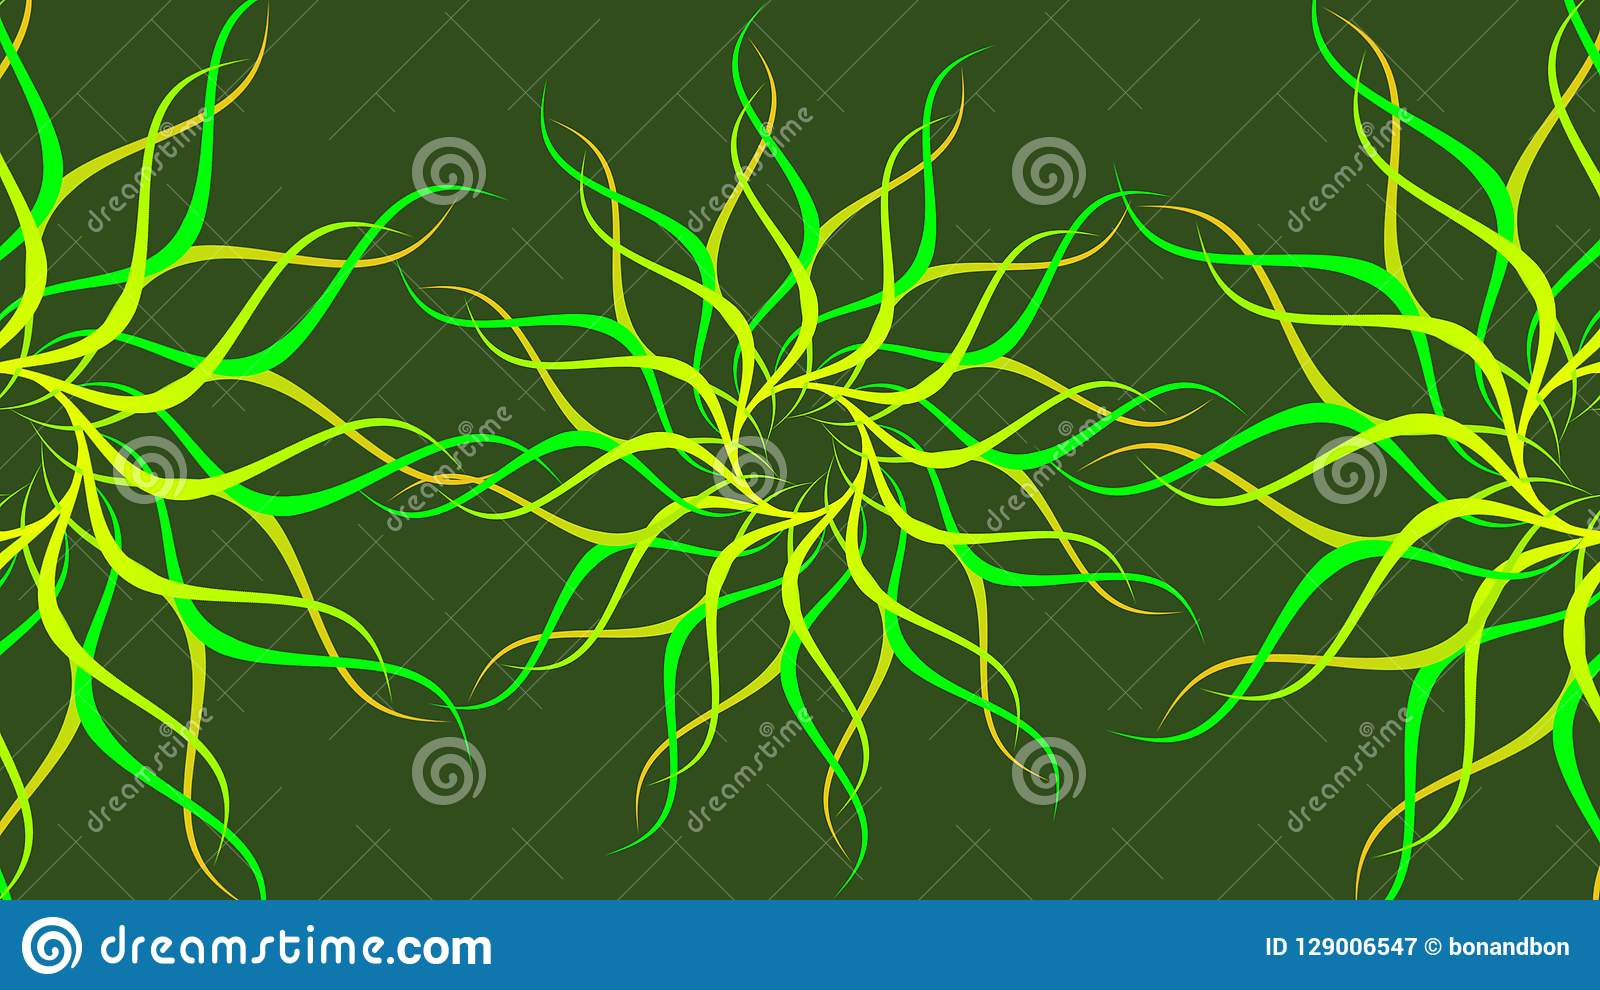 Green & yellow rotating patterned colorful spiral, Abstract waves background.